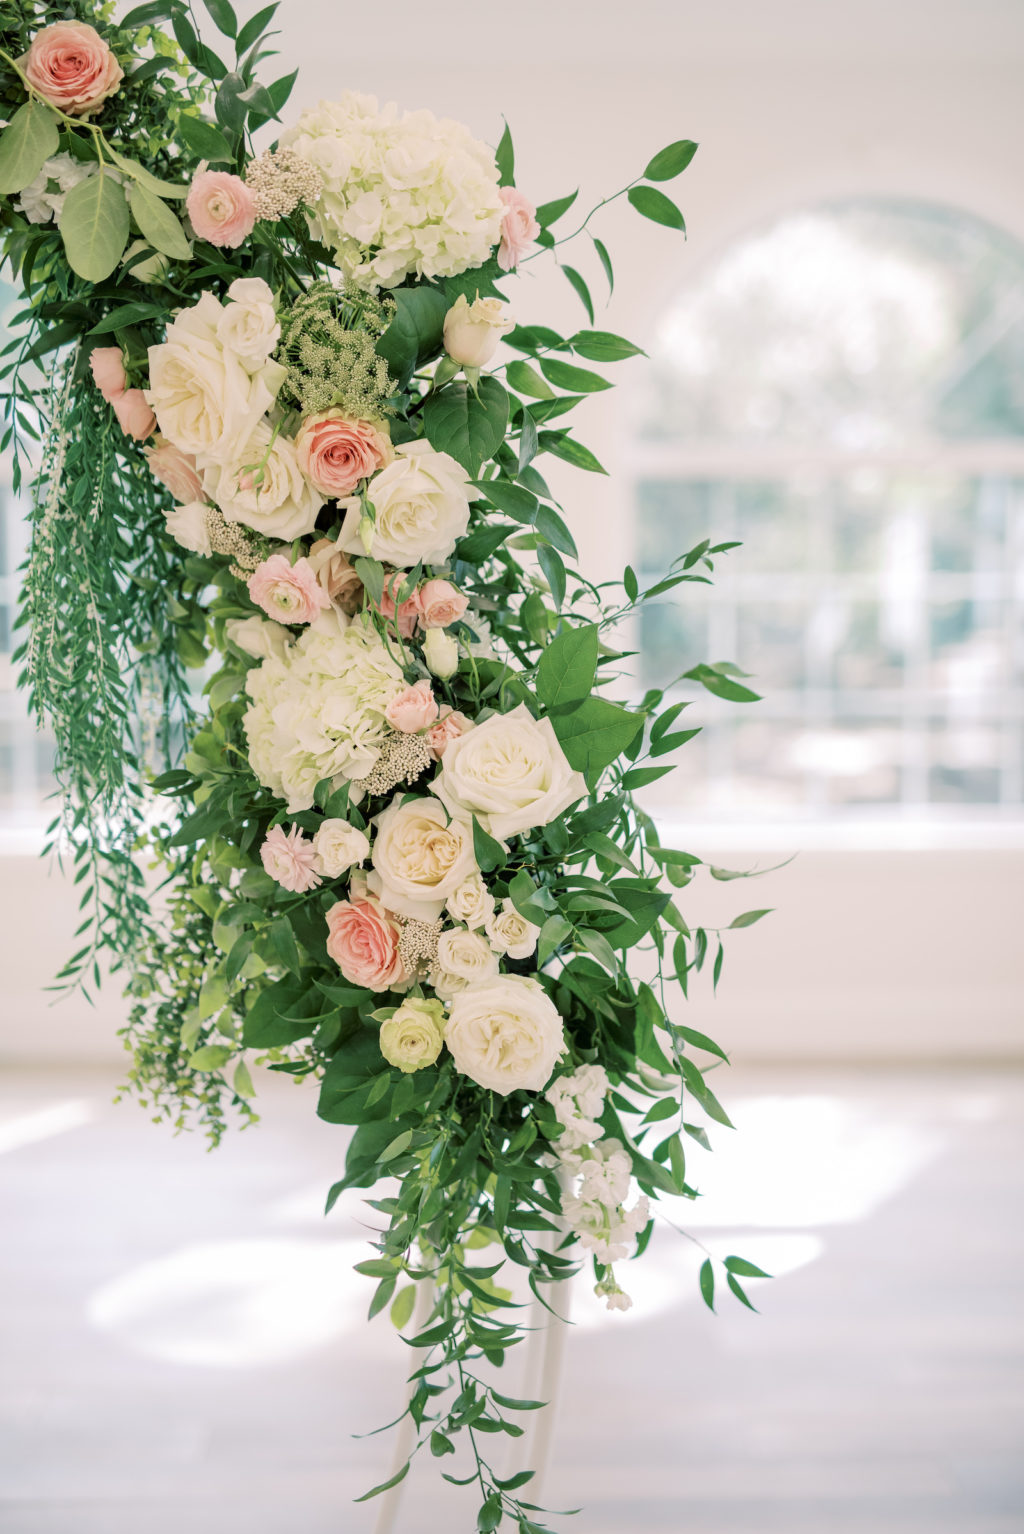 Timeless Romantic Wedding Ceremony Decor, Round Arch with Greenery and Ivory, Blush Florals | Wedding Planner Special Moments Event Planning